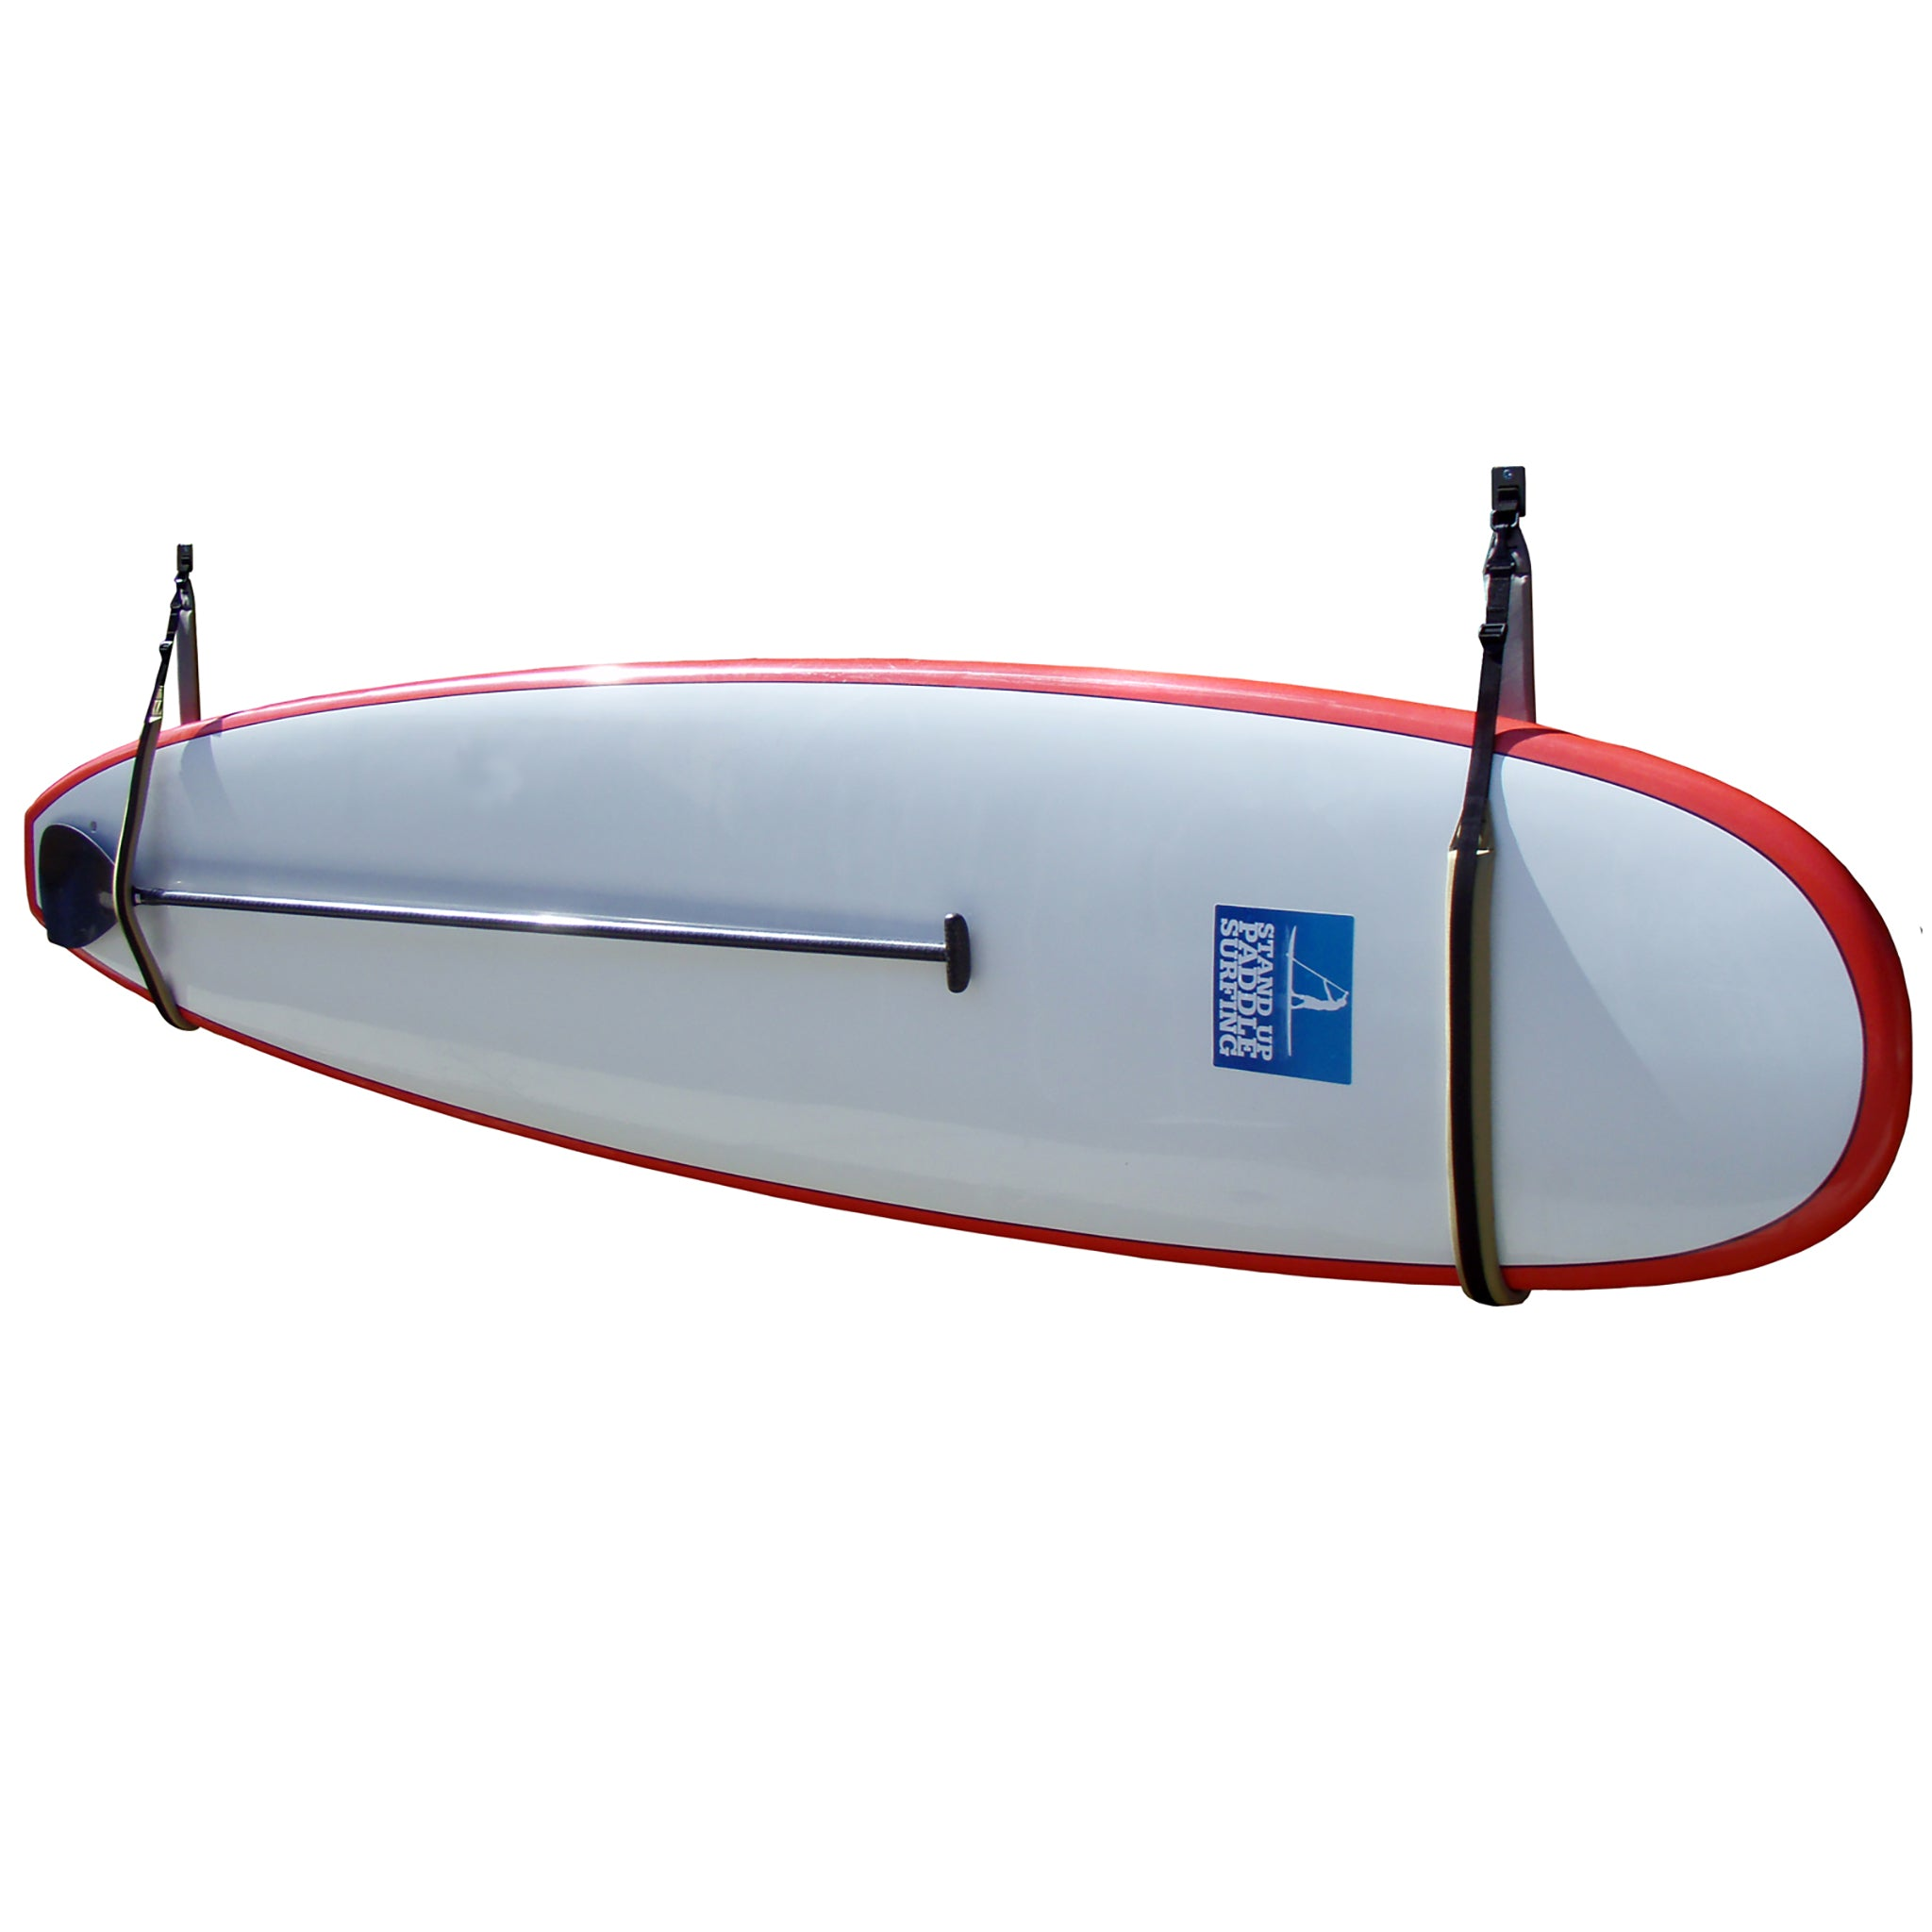 Aquasling _ SUP board wall rack _ SUP storage